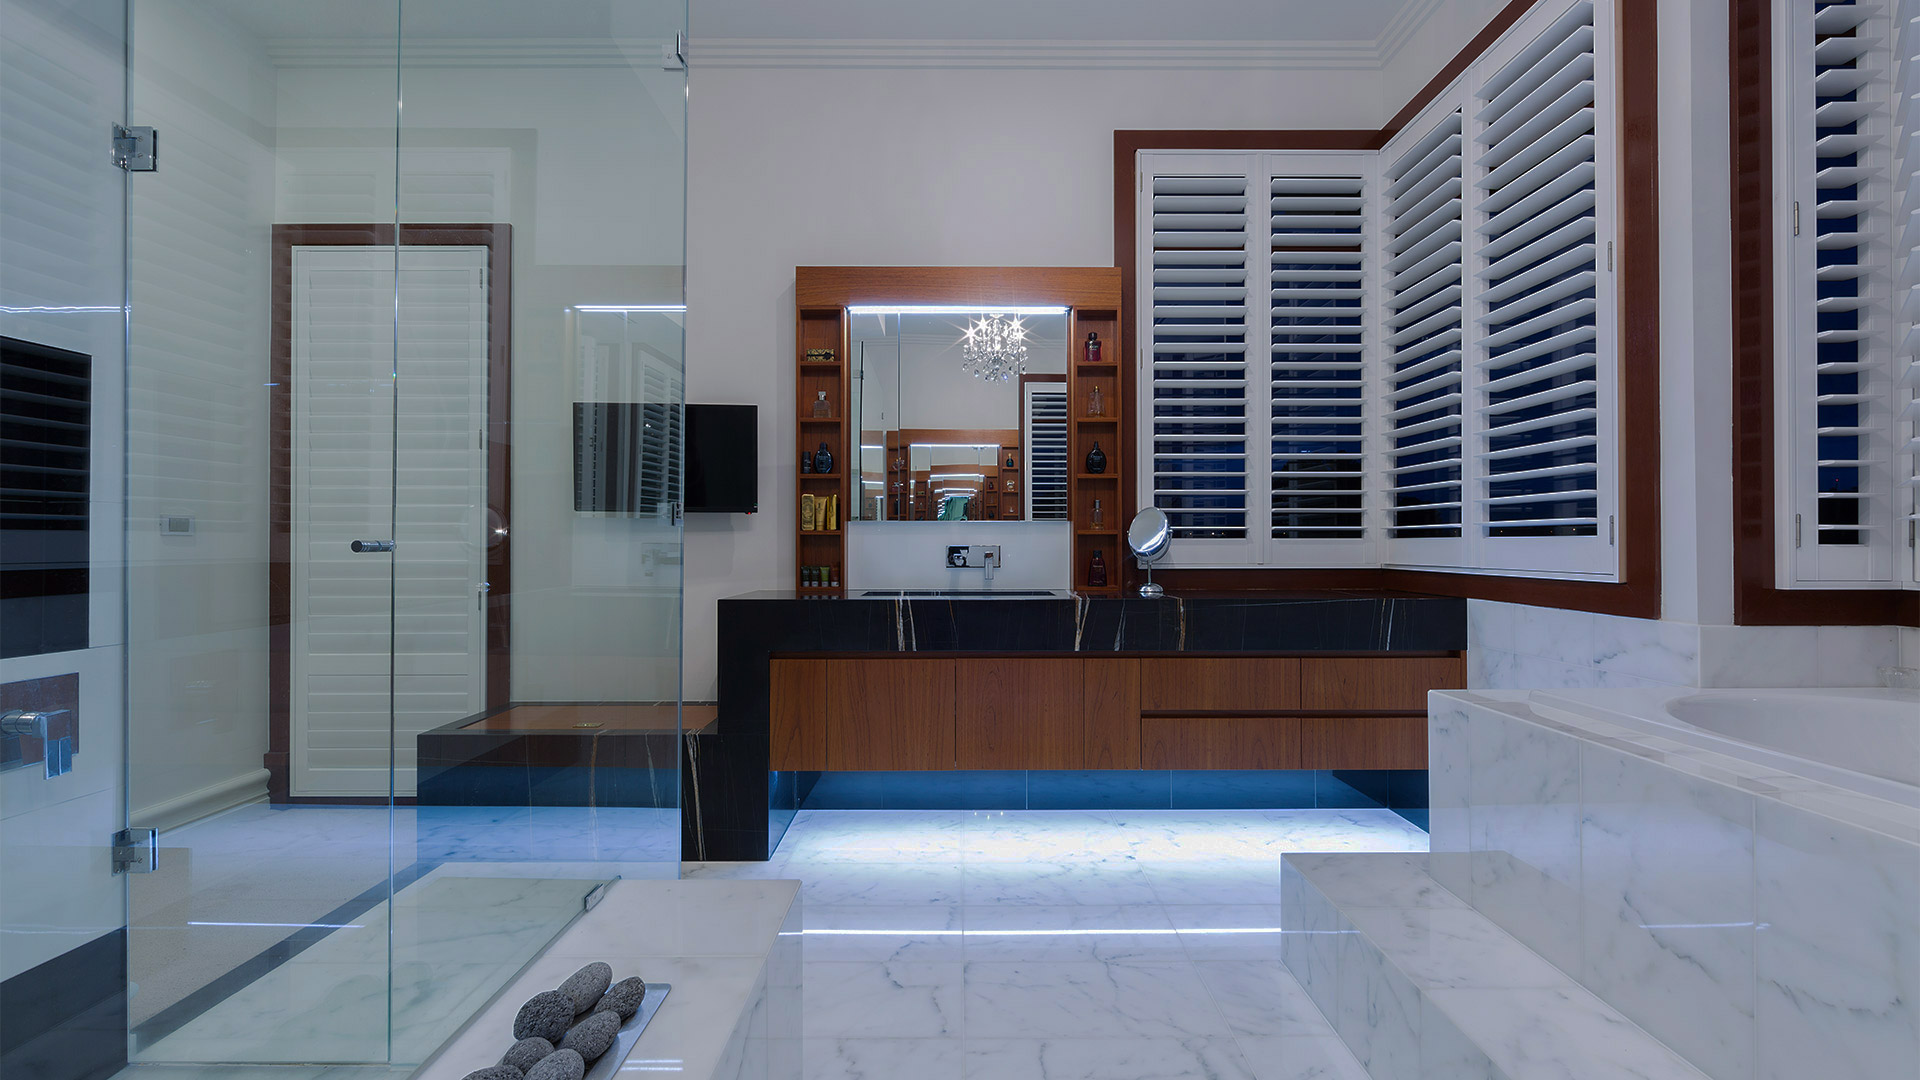 Kitchens canberra kitchen renovations company best for Home designs canberra